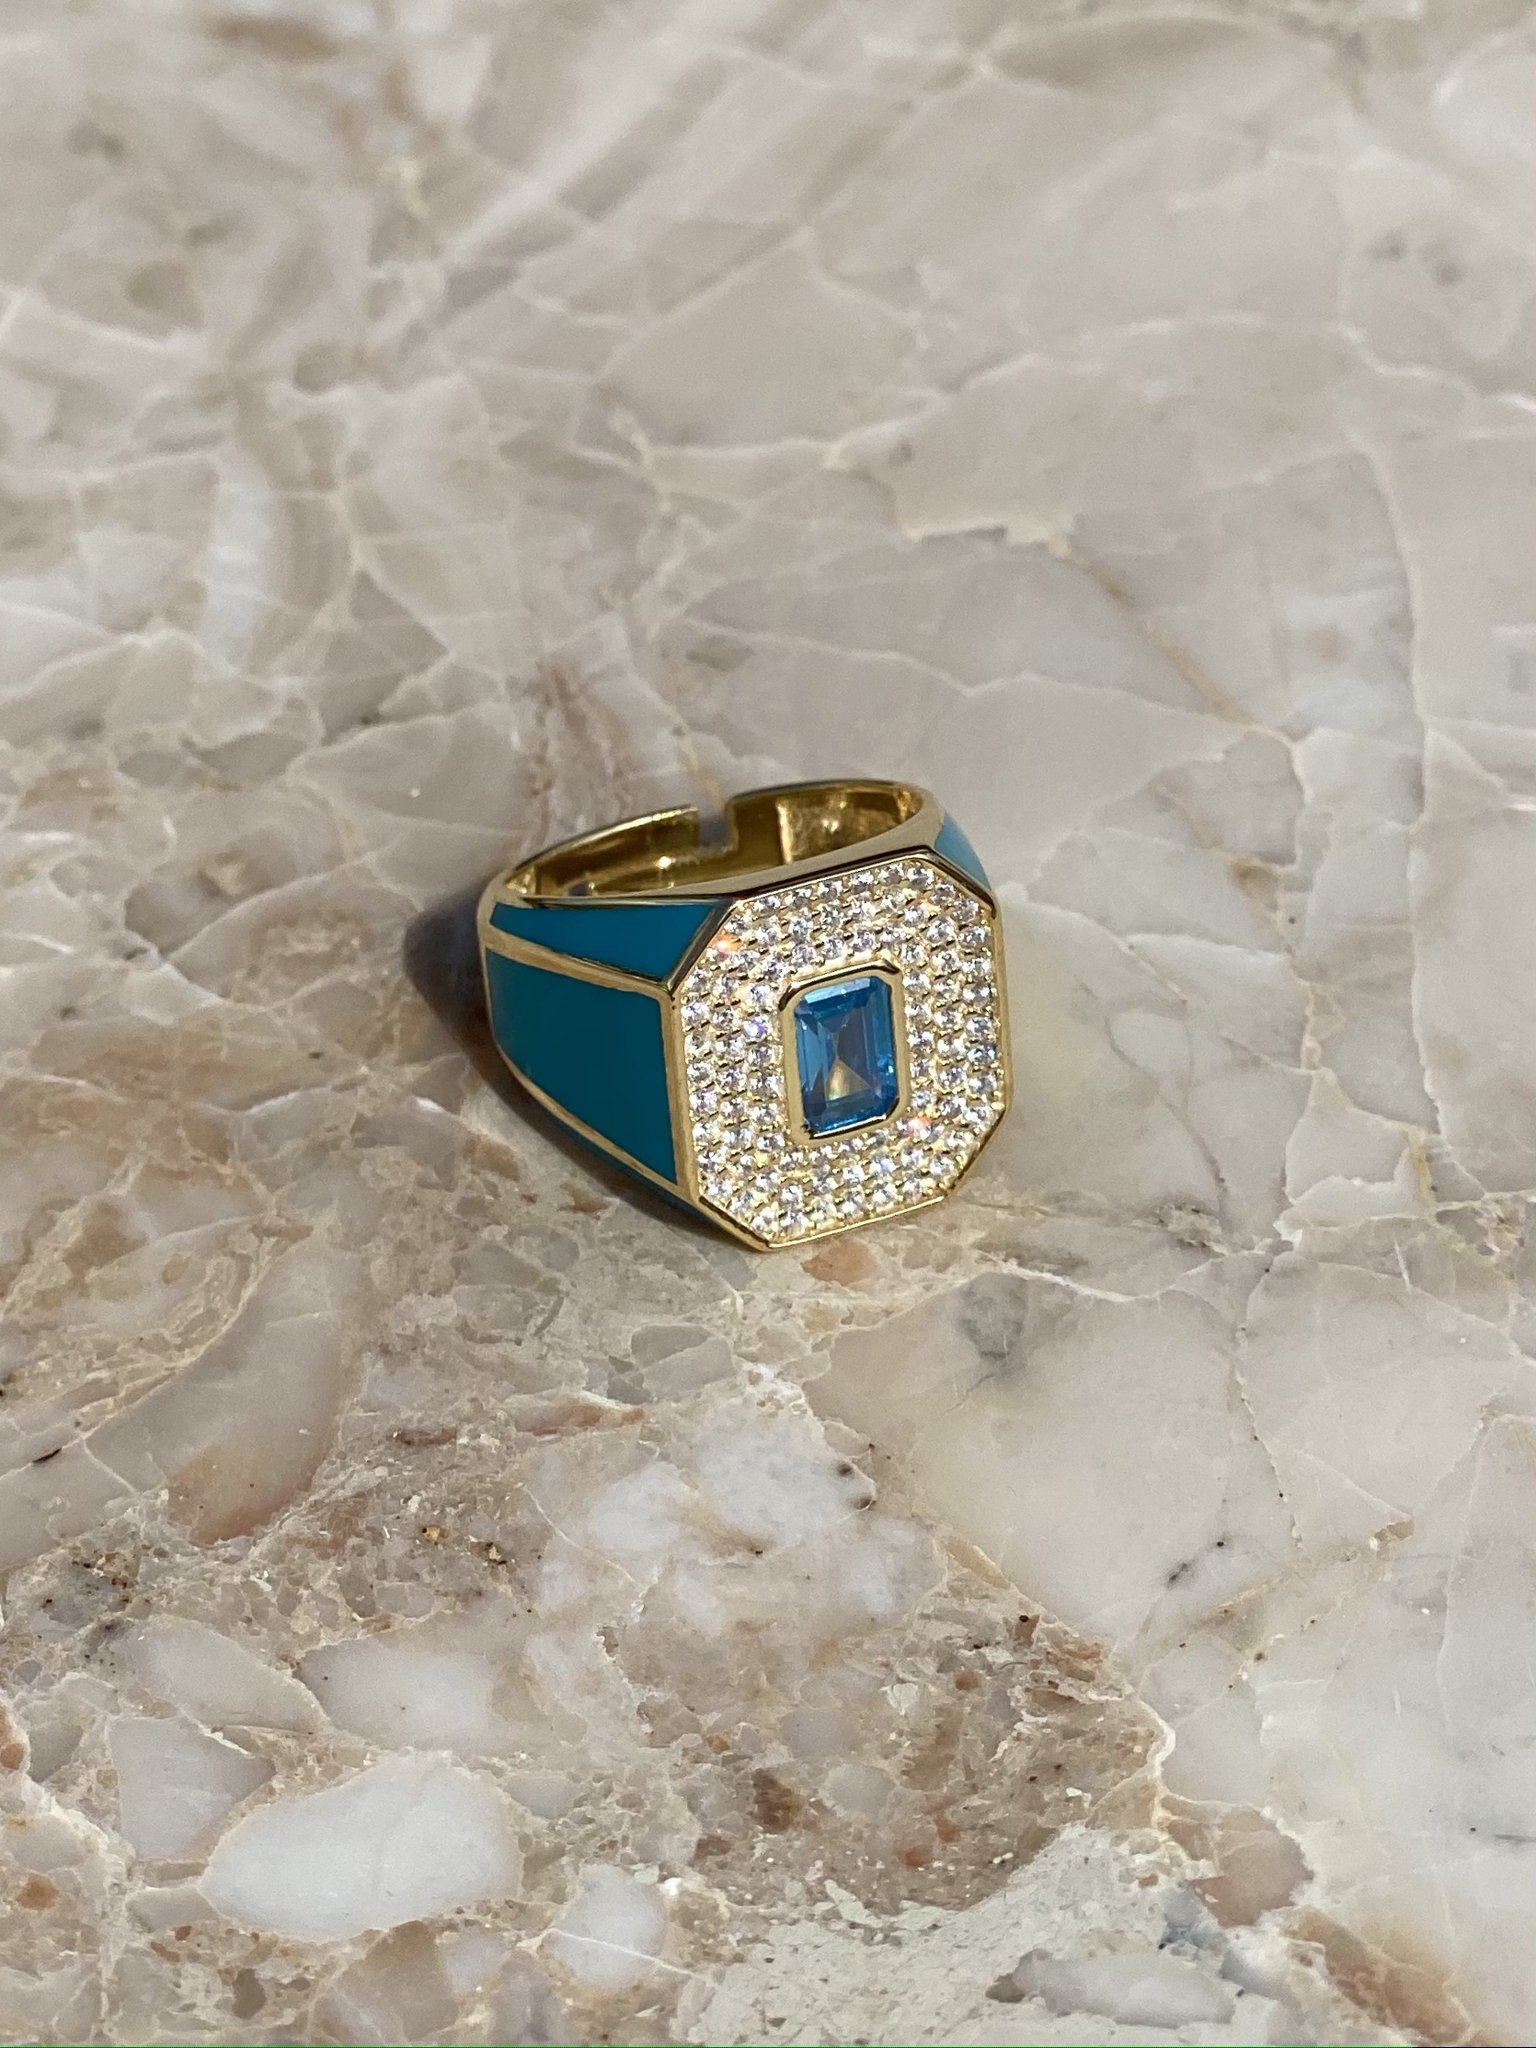 Signet ring in gold plated silver with blue enamel and zircons